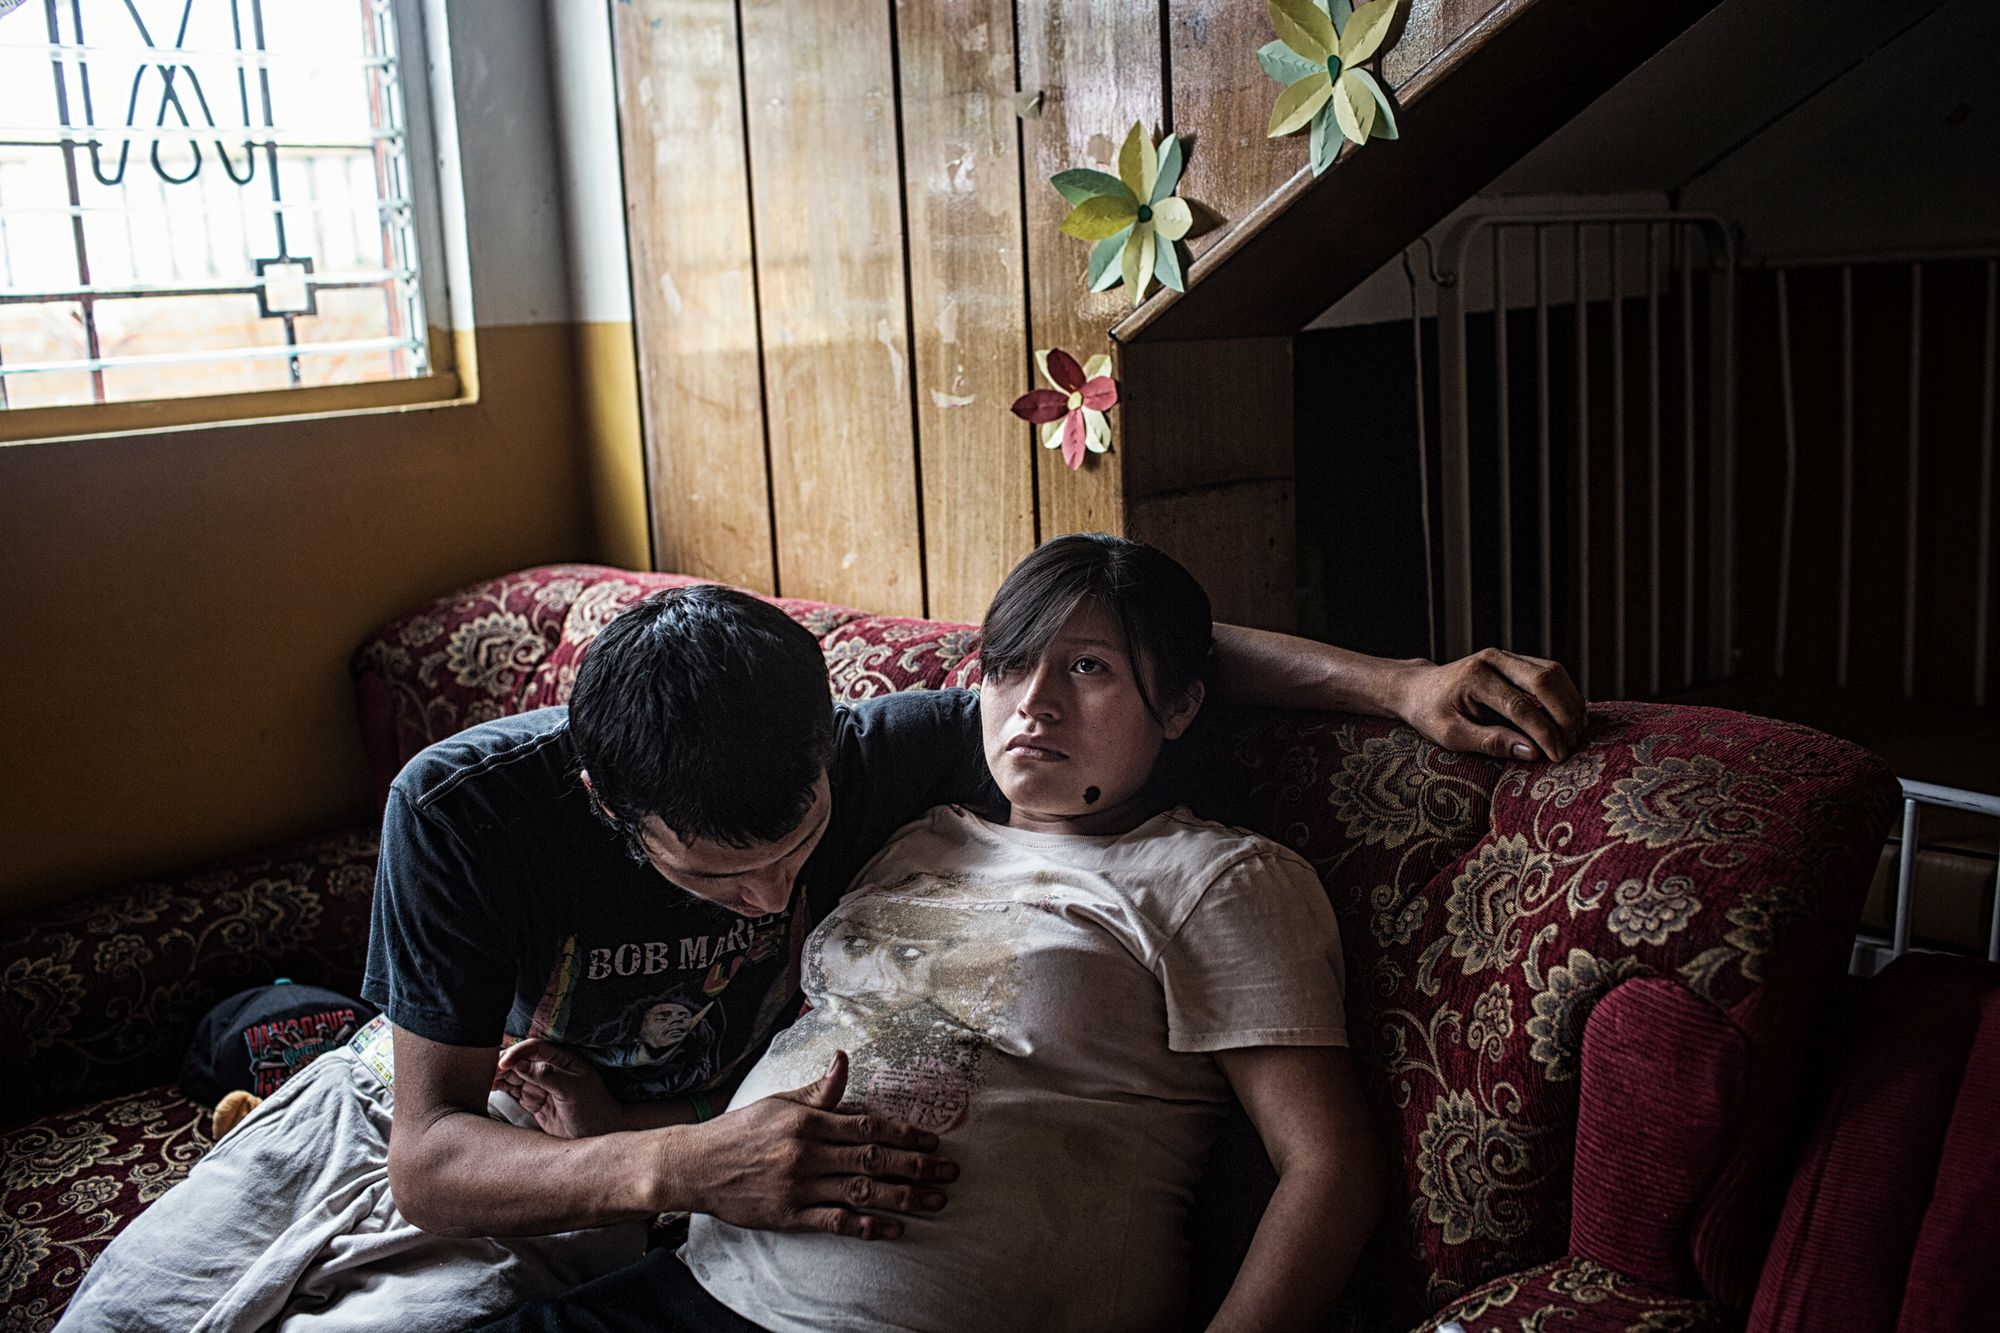 Planes De Renderos El Salvador May 2016 Idalia Alverado Sanchez And Her Husband Alex In An Intimate Moment Awaiting The Arrival Of Their Child At The